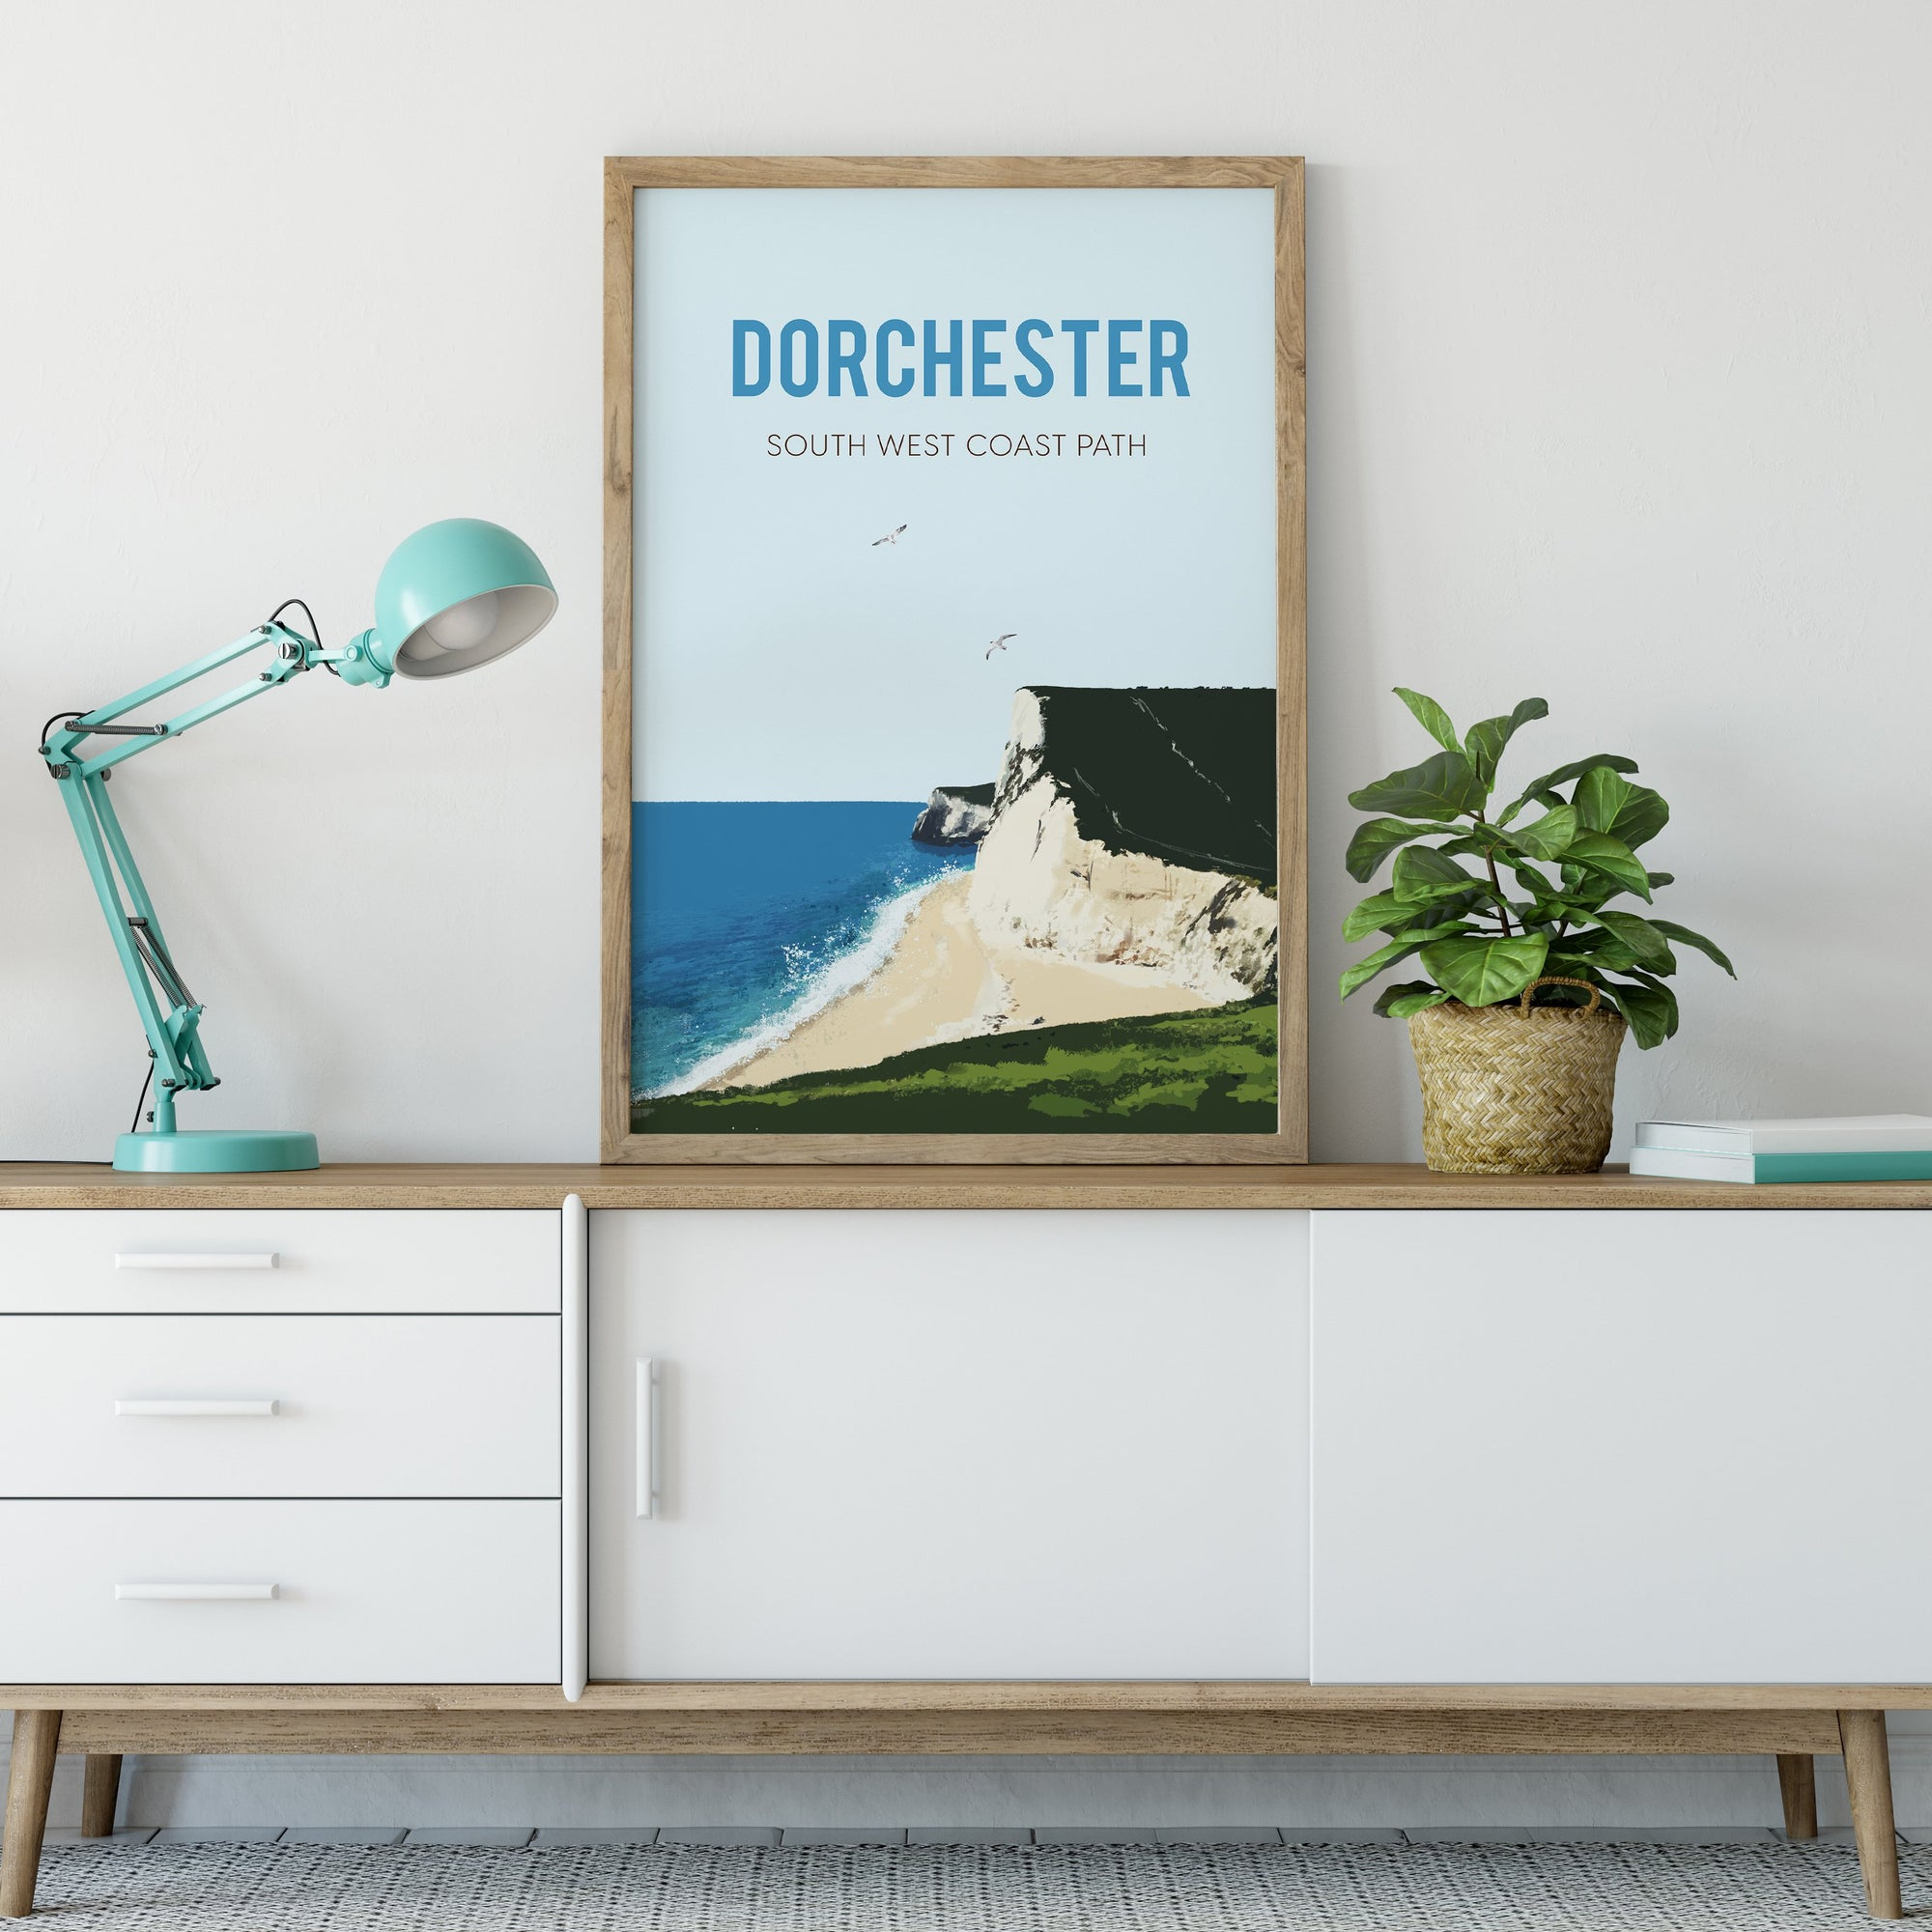 South West Coastal Path, Dorchester - UNFRAMED